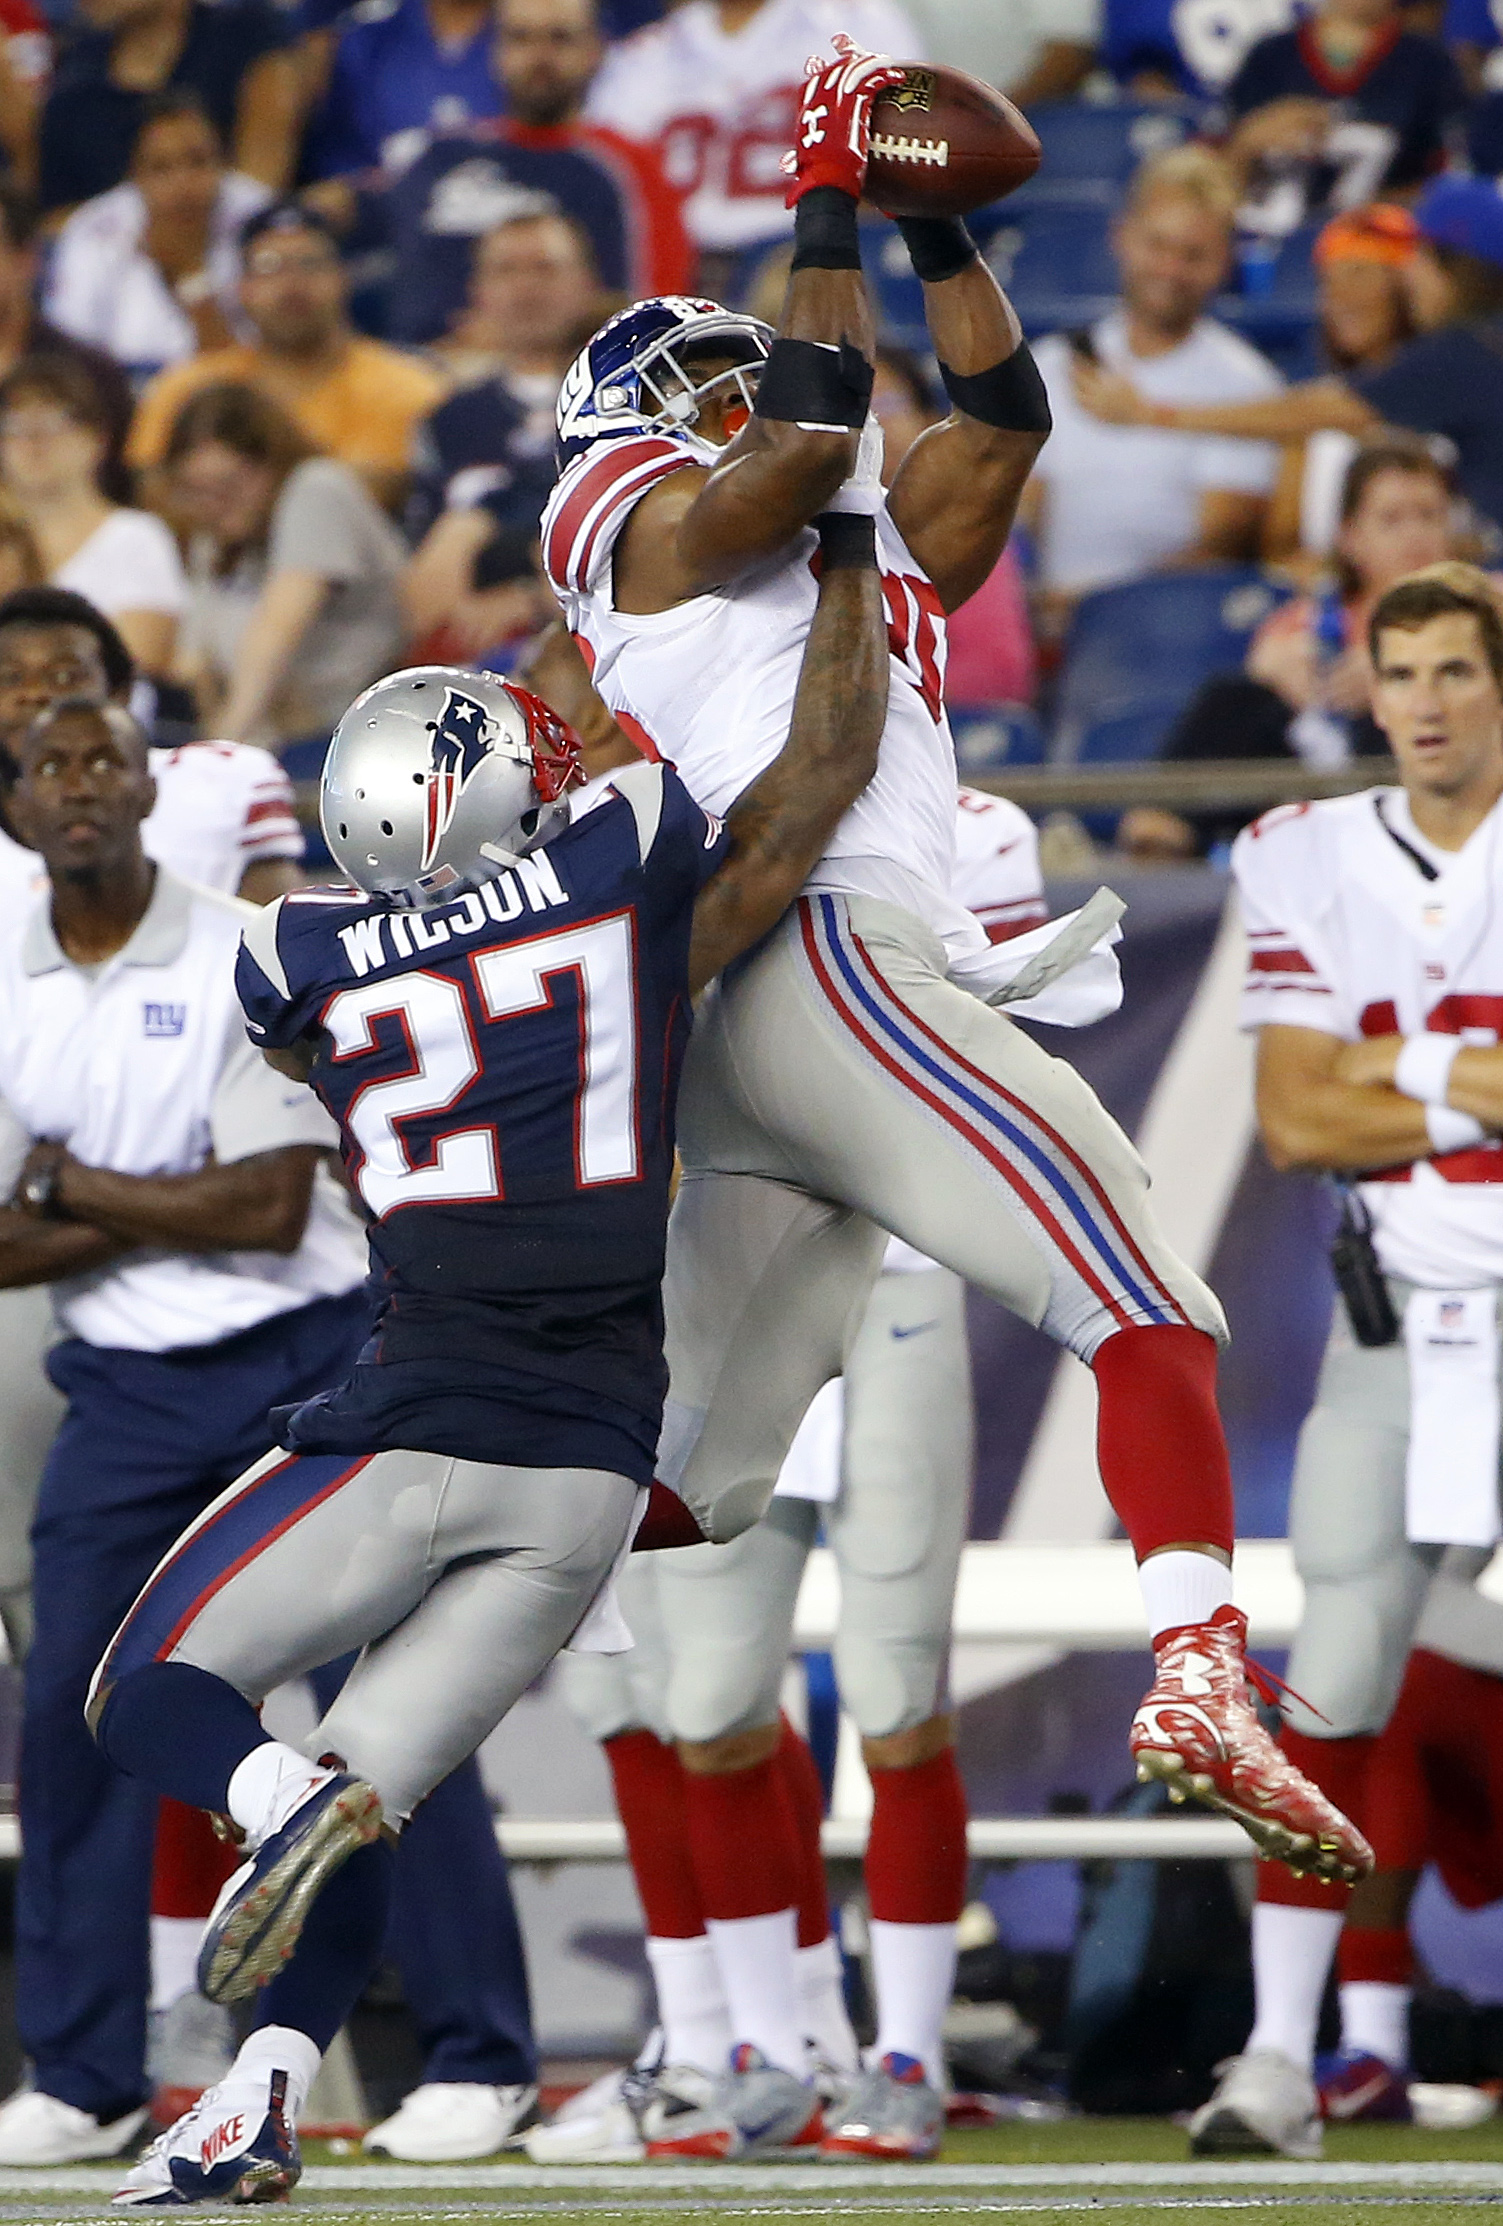 New York Giants tight end Jerome Cunningham, rear, catches a pass over New England Patriots strong safety Tavon Wilson (27) in the second half of an NFL football game Thursday, Sept. 3, 2015, in Foxborough, Mass. (AP Photo/Winslow Townson)